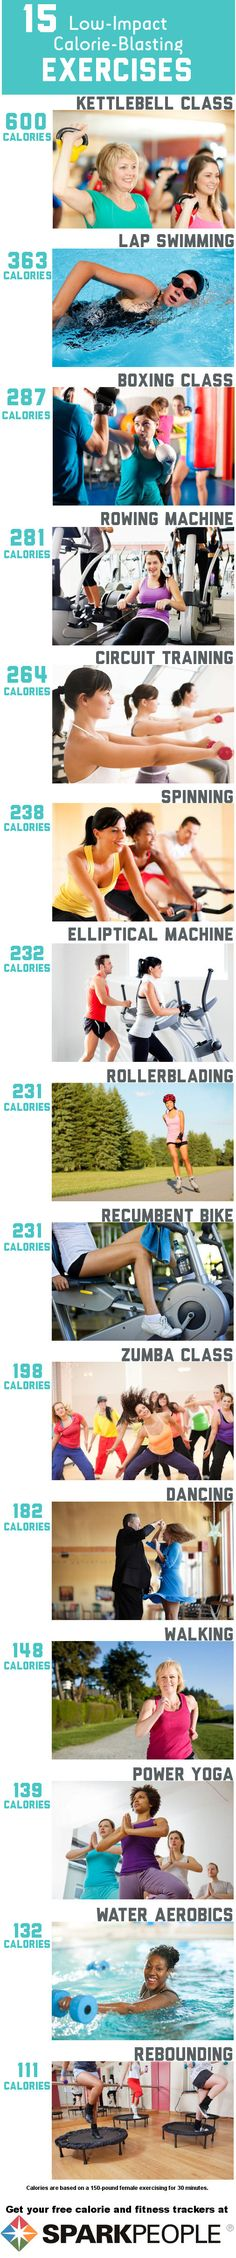 Low-Impact Exercises That Burn Major Calories. YAY! Love these! Super helpful for someone with bad knees like me :) | via @SparkPeople #workout #fitness #lowimpact #weightloss #health #healthy